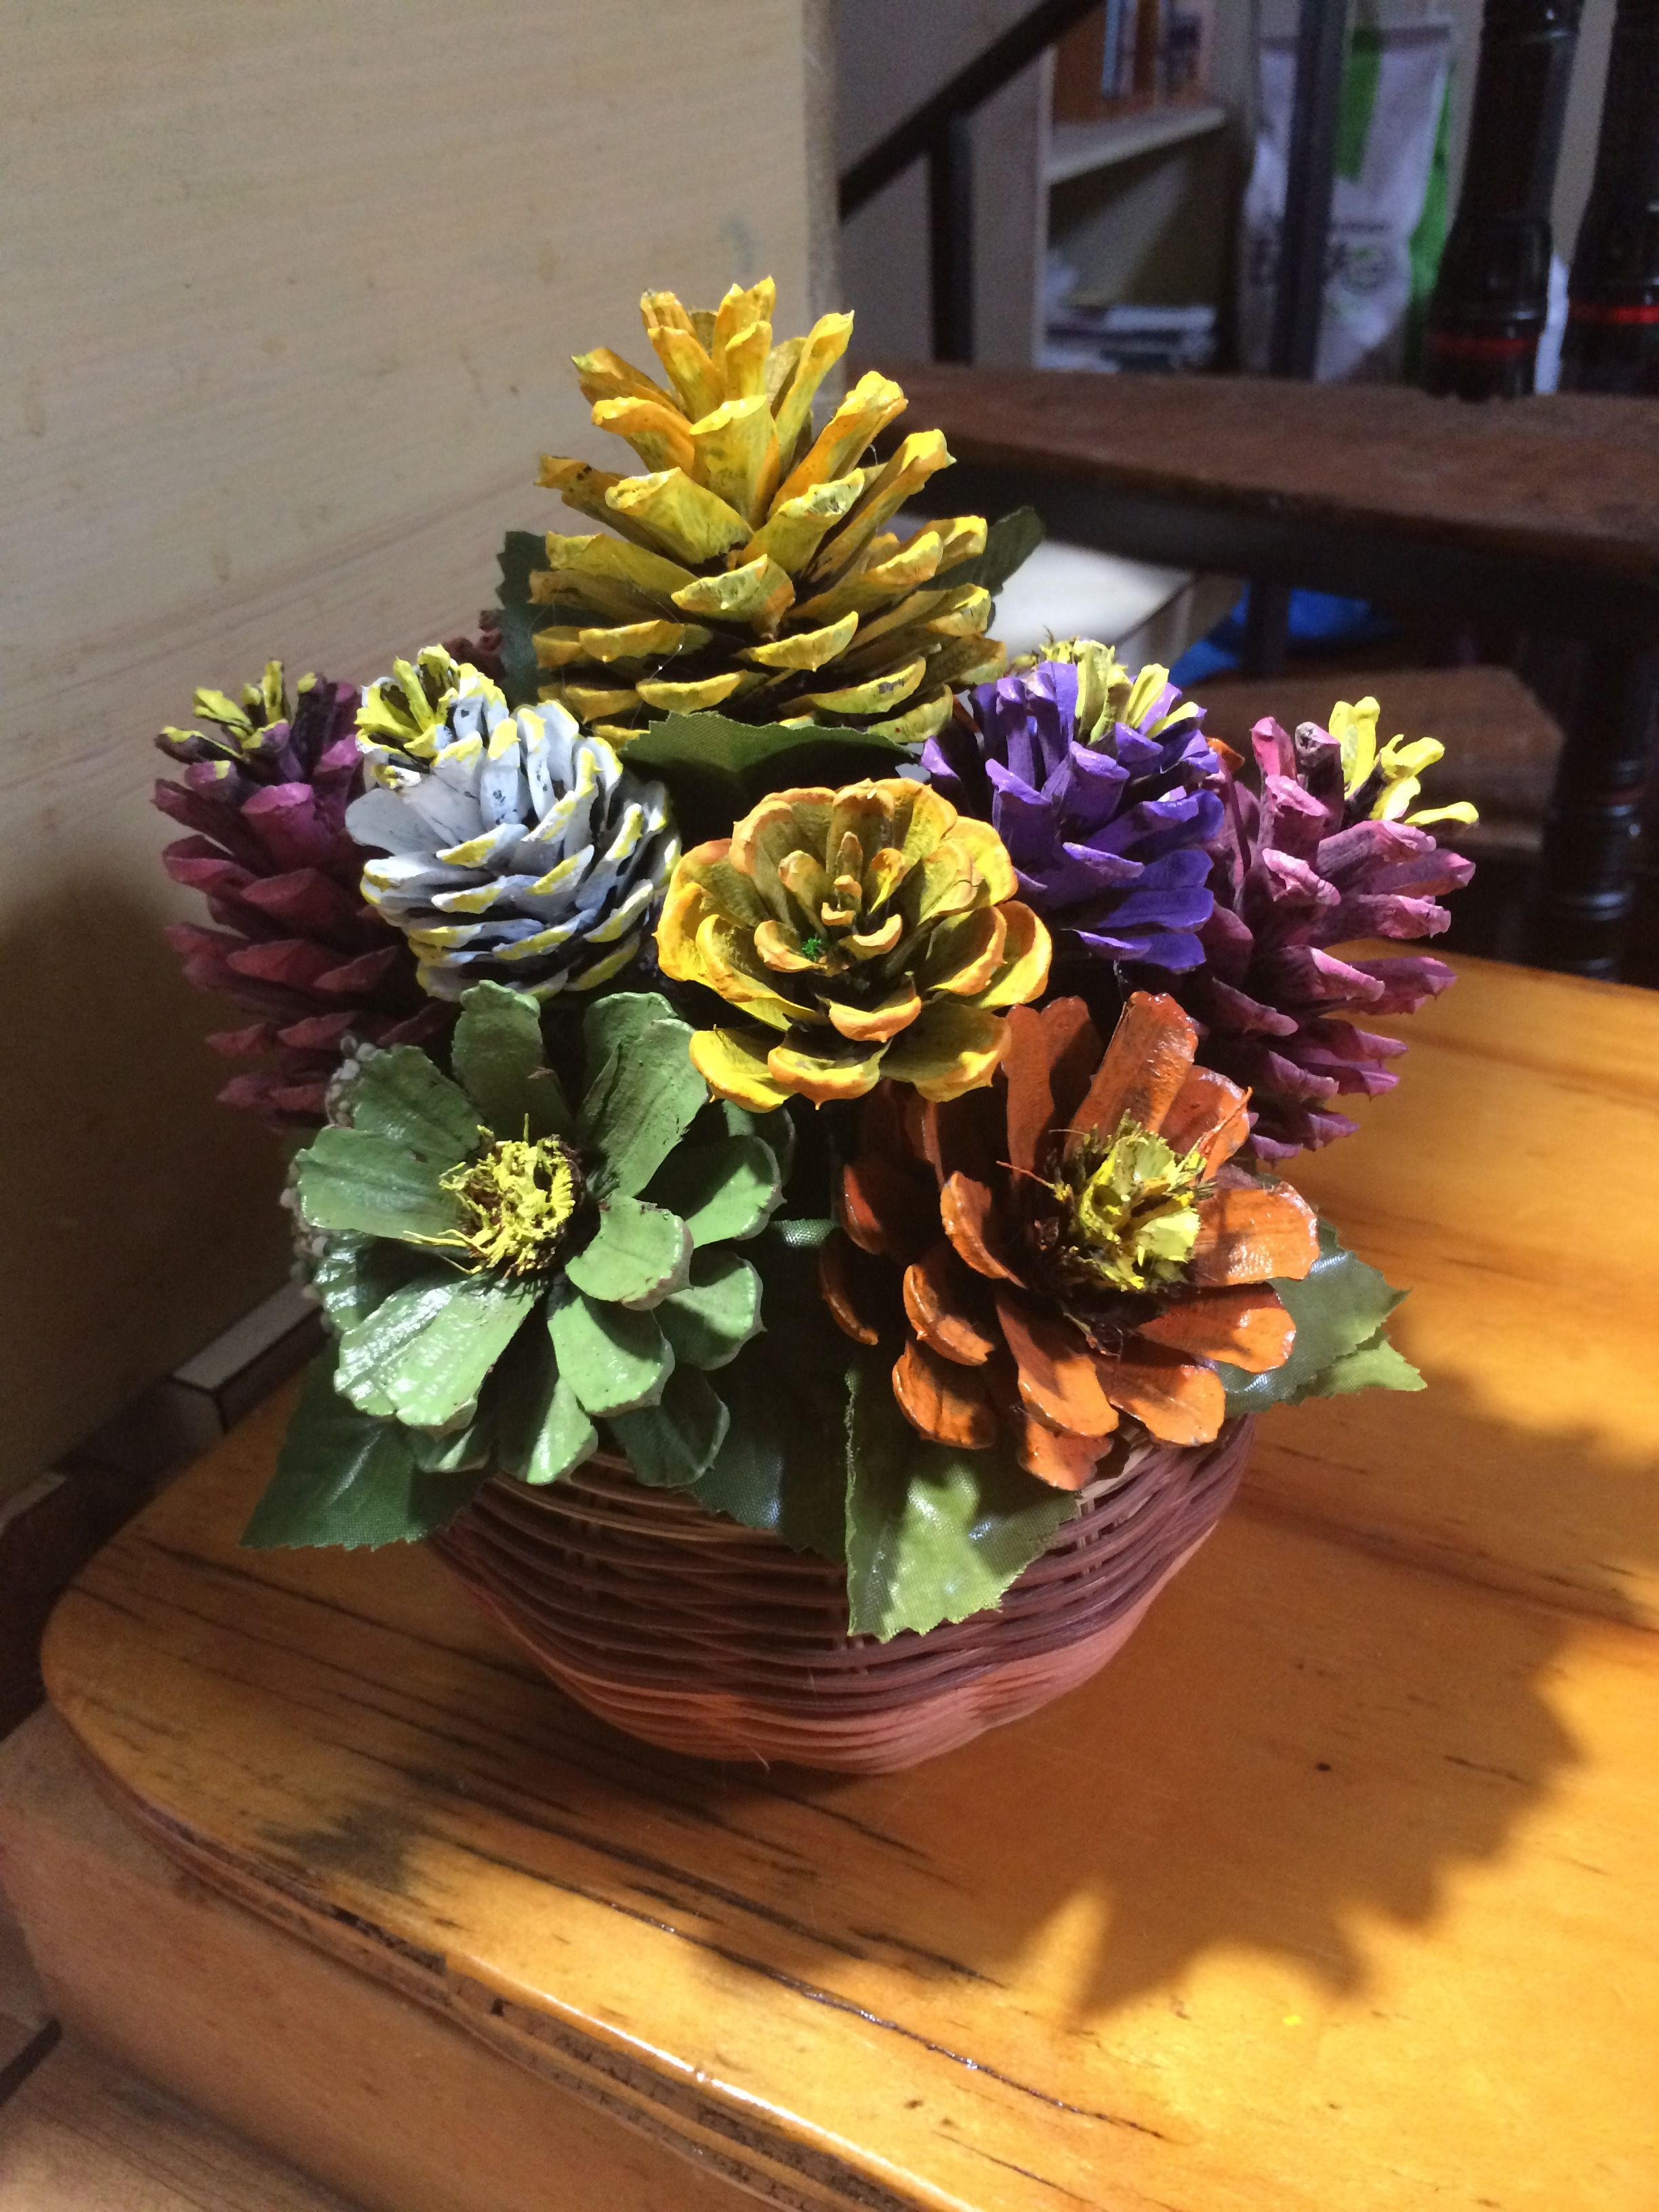 Painted Pinecone Flowers In Basket By Cat Painted Pinecones Pine Cone Decorations Pine Cone Crafts